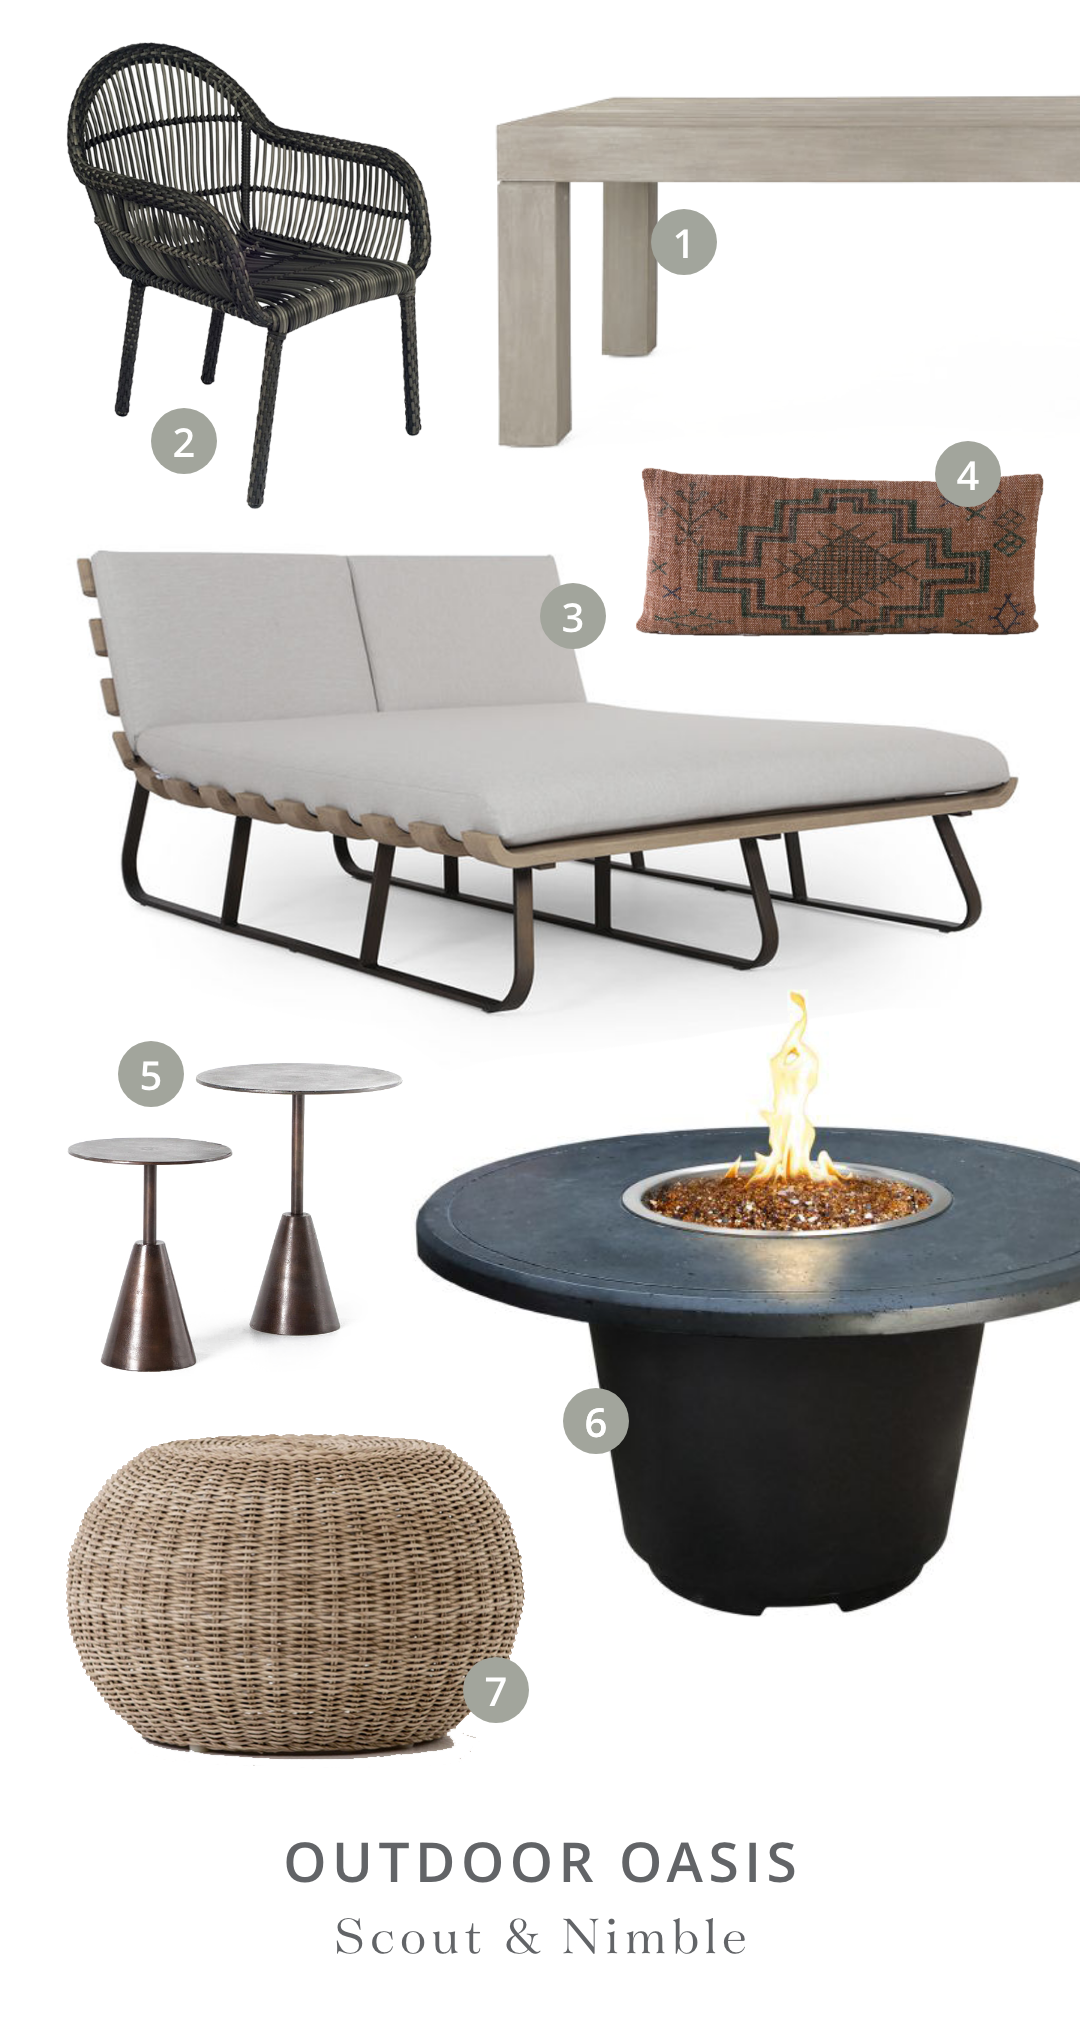 Shop the Look  | 1.  Sonora Outdoor Dining Table  2.  Canaveral Cape Dining Arm Chair  3.  Dimitri Double Daybed  4.  Tribal Print Rust Lumbar Pillow  5.  Frisco End Tables, set of 2  6.  Cosmopolitan Round Firetable  7.  Phoenix Outdoor Accent Stool